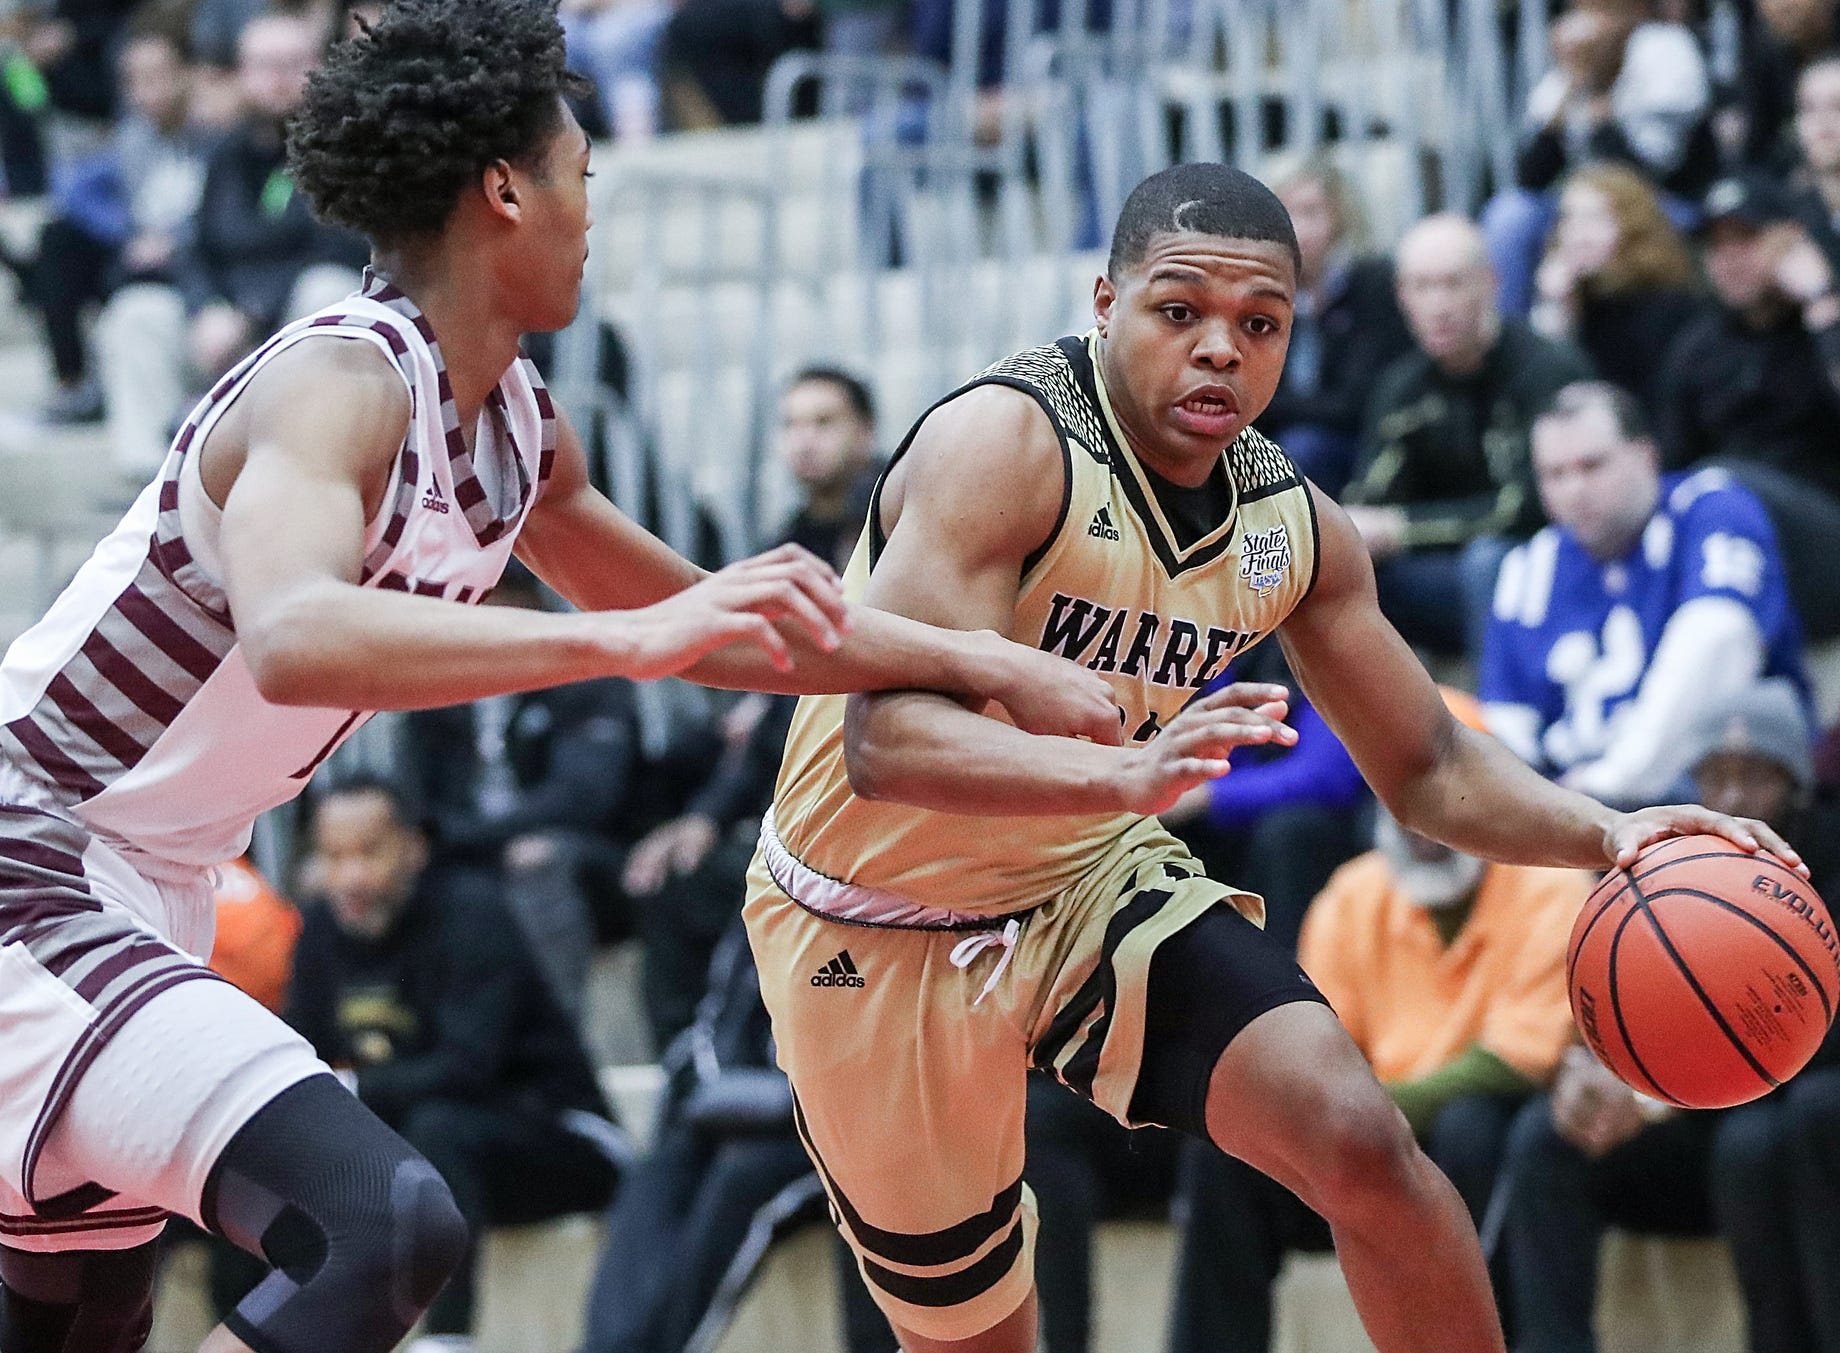 Lawrence Central Bears Dre Davis (14) guards Warren Central Warriors Manuel Brown Jr. (33) in the first half of Marion County tournament finals at Southport High School in Indianapolis, Monday, Jan. 14, 2019.